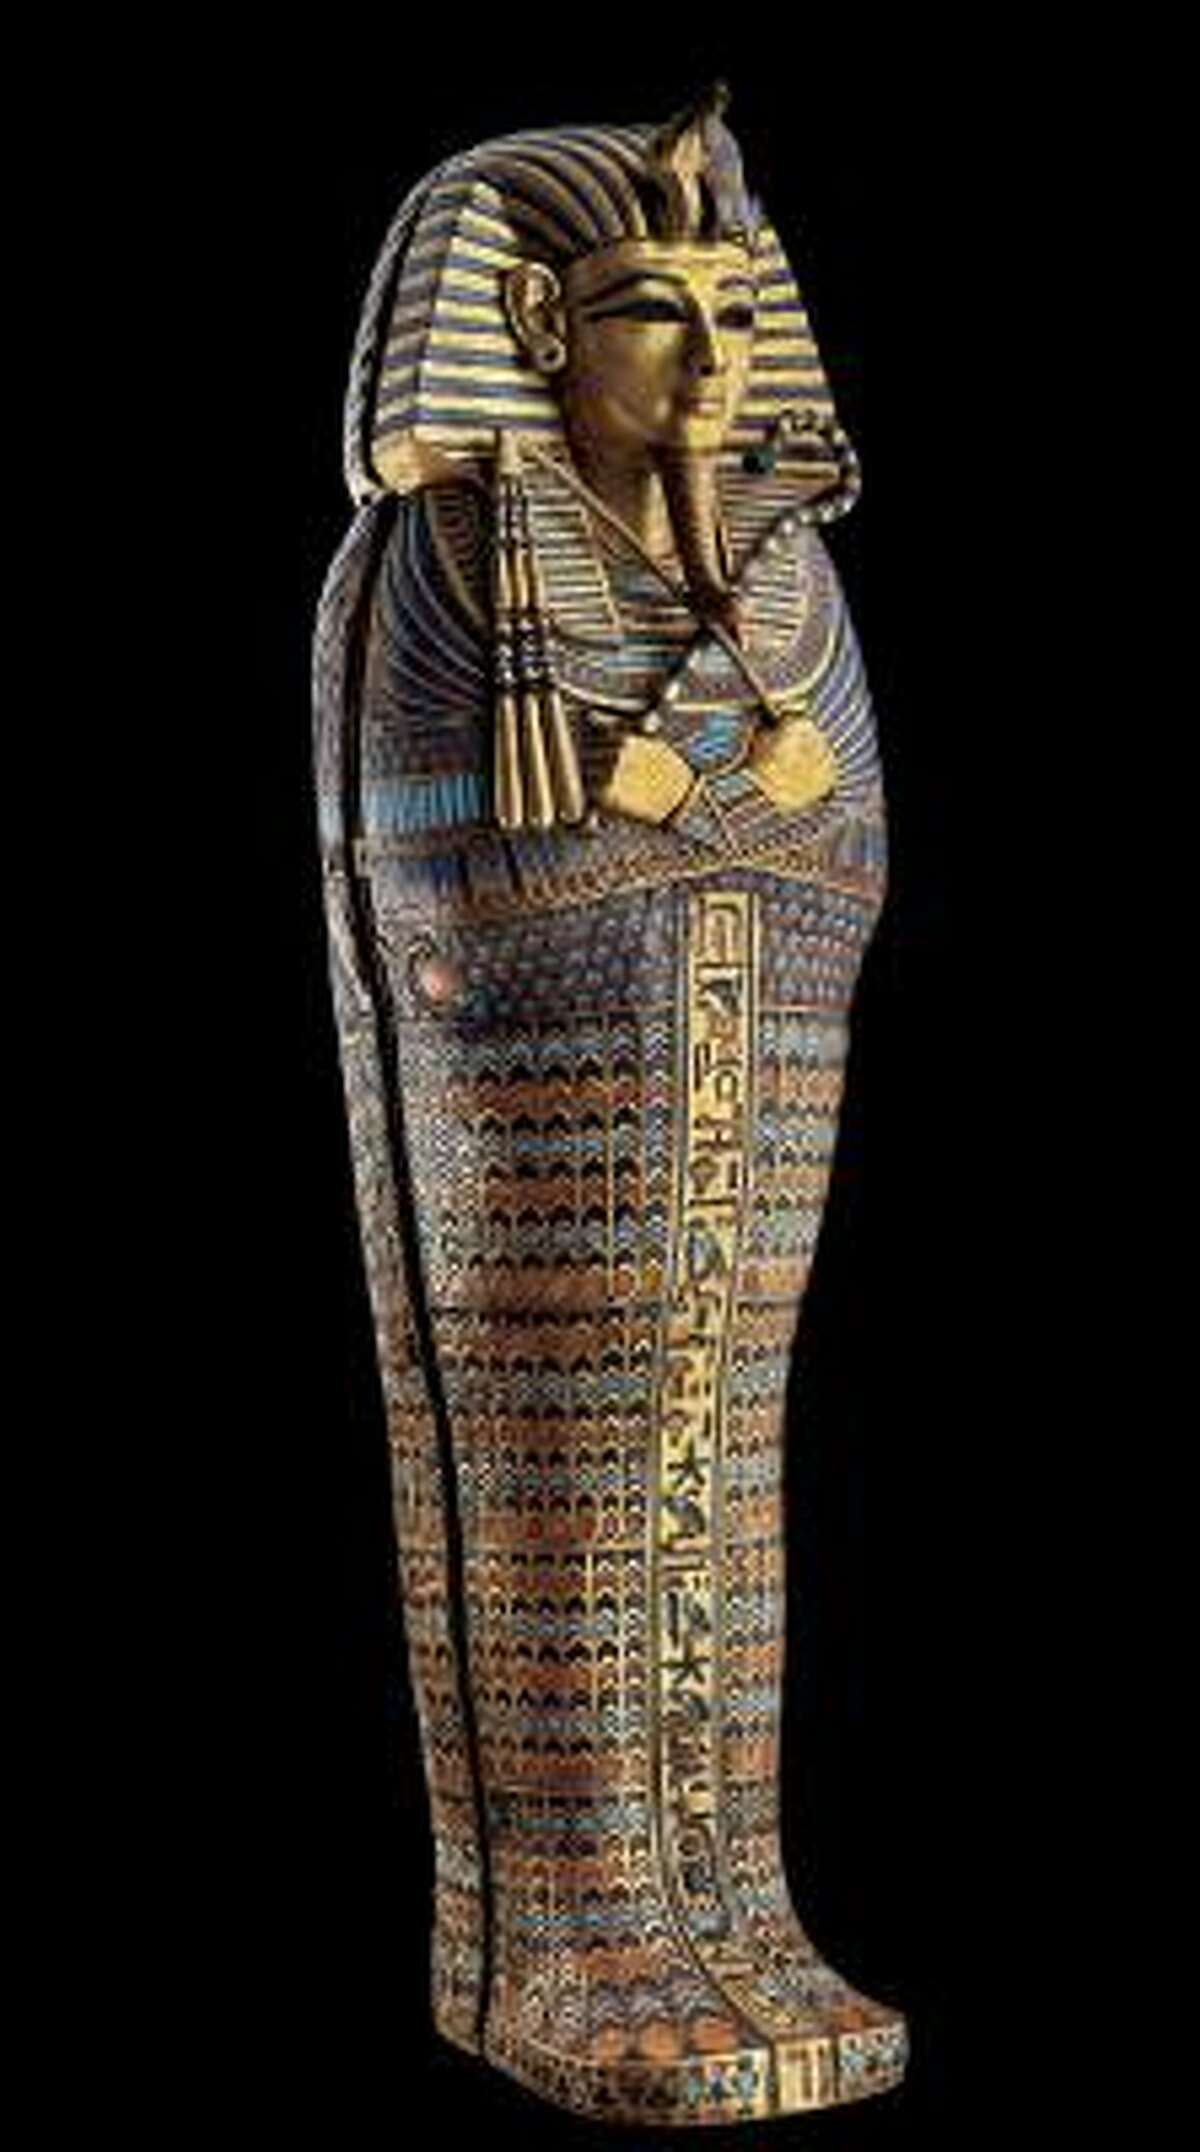 The Museum of Fine Arts, Houston will present Tutankhamum: The Golden King and the Great Pharaohs from Oct. 13, 2011 to April 15, 2012. Each of the four miniature coffins of Tutankhamun held a different internal organ, and this one originally contained the stomach. Guarded by distinct gods, this container had the protection of both Duamutef and the goddess Neith, deities named in the inscription on the front.